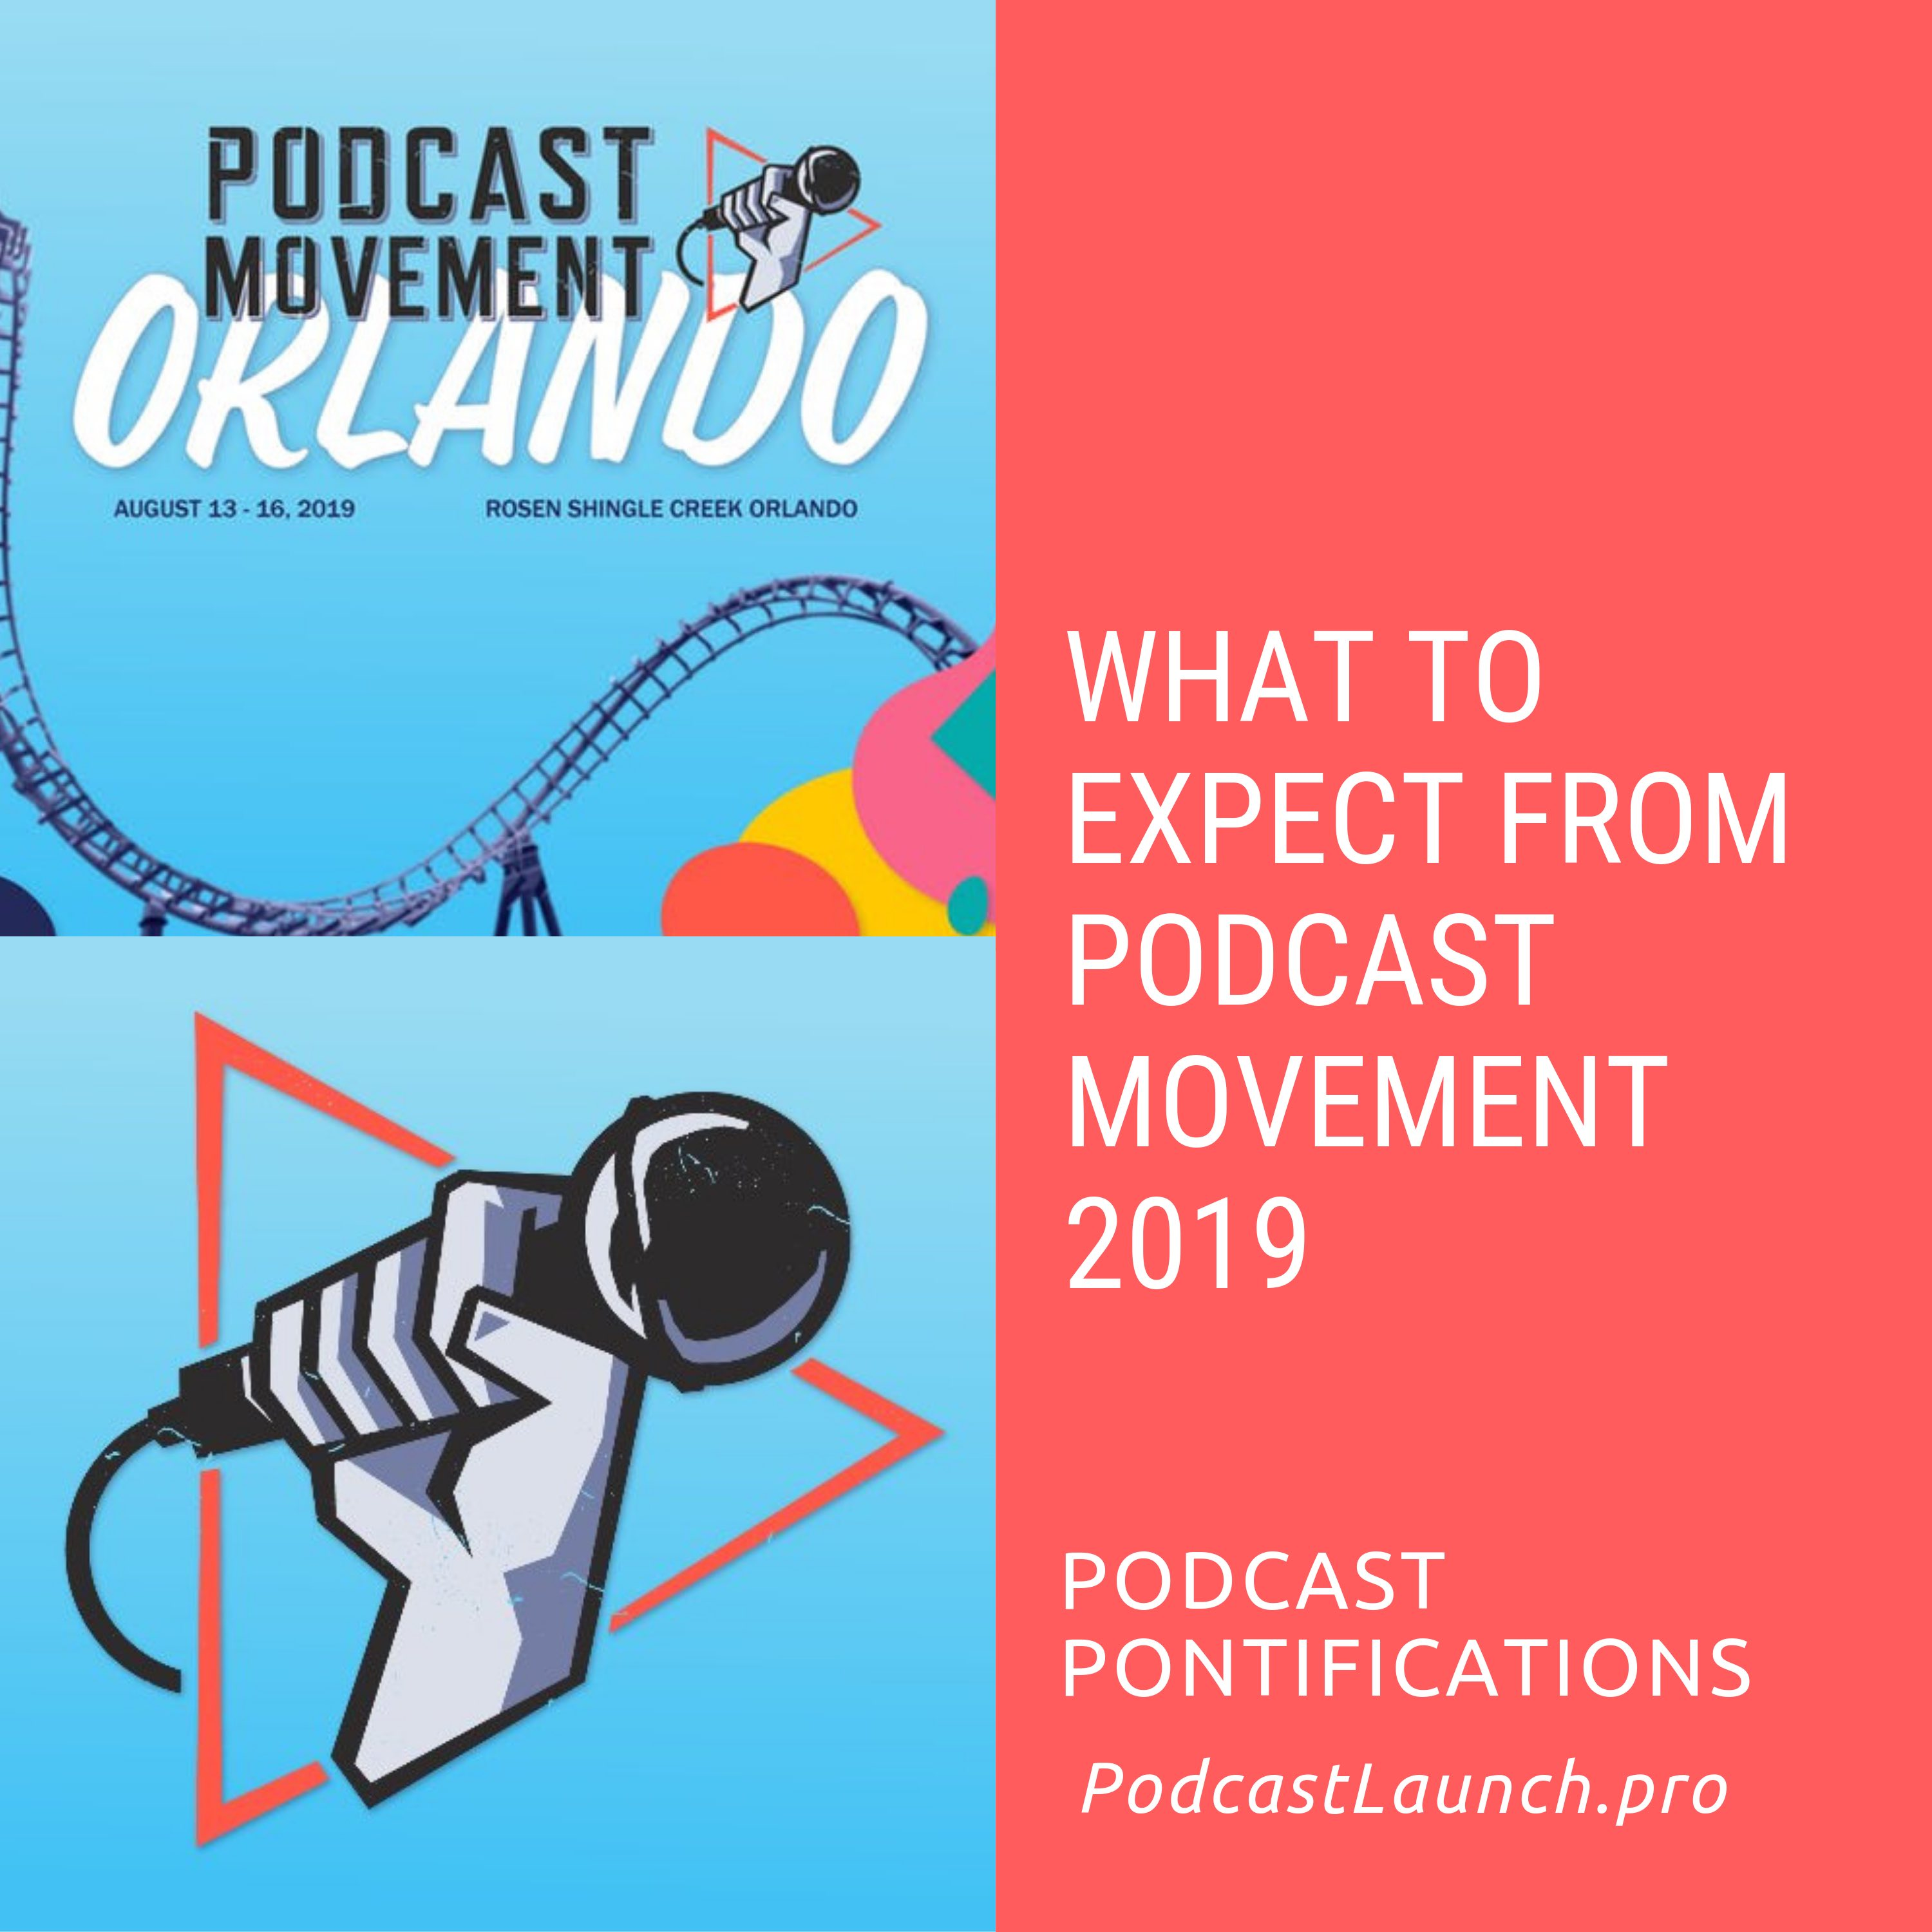 What To Expect From Podcast Movement 2019